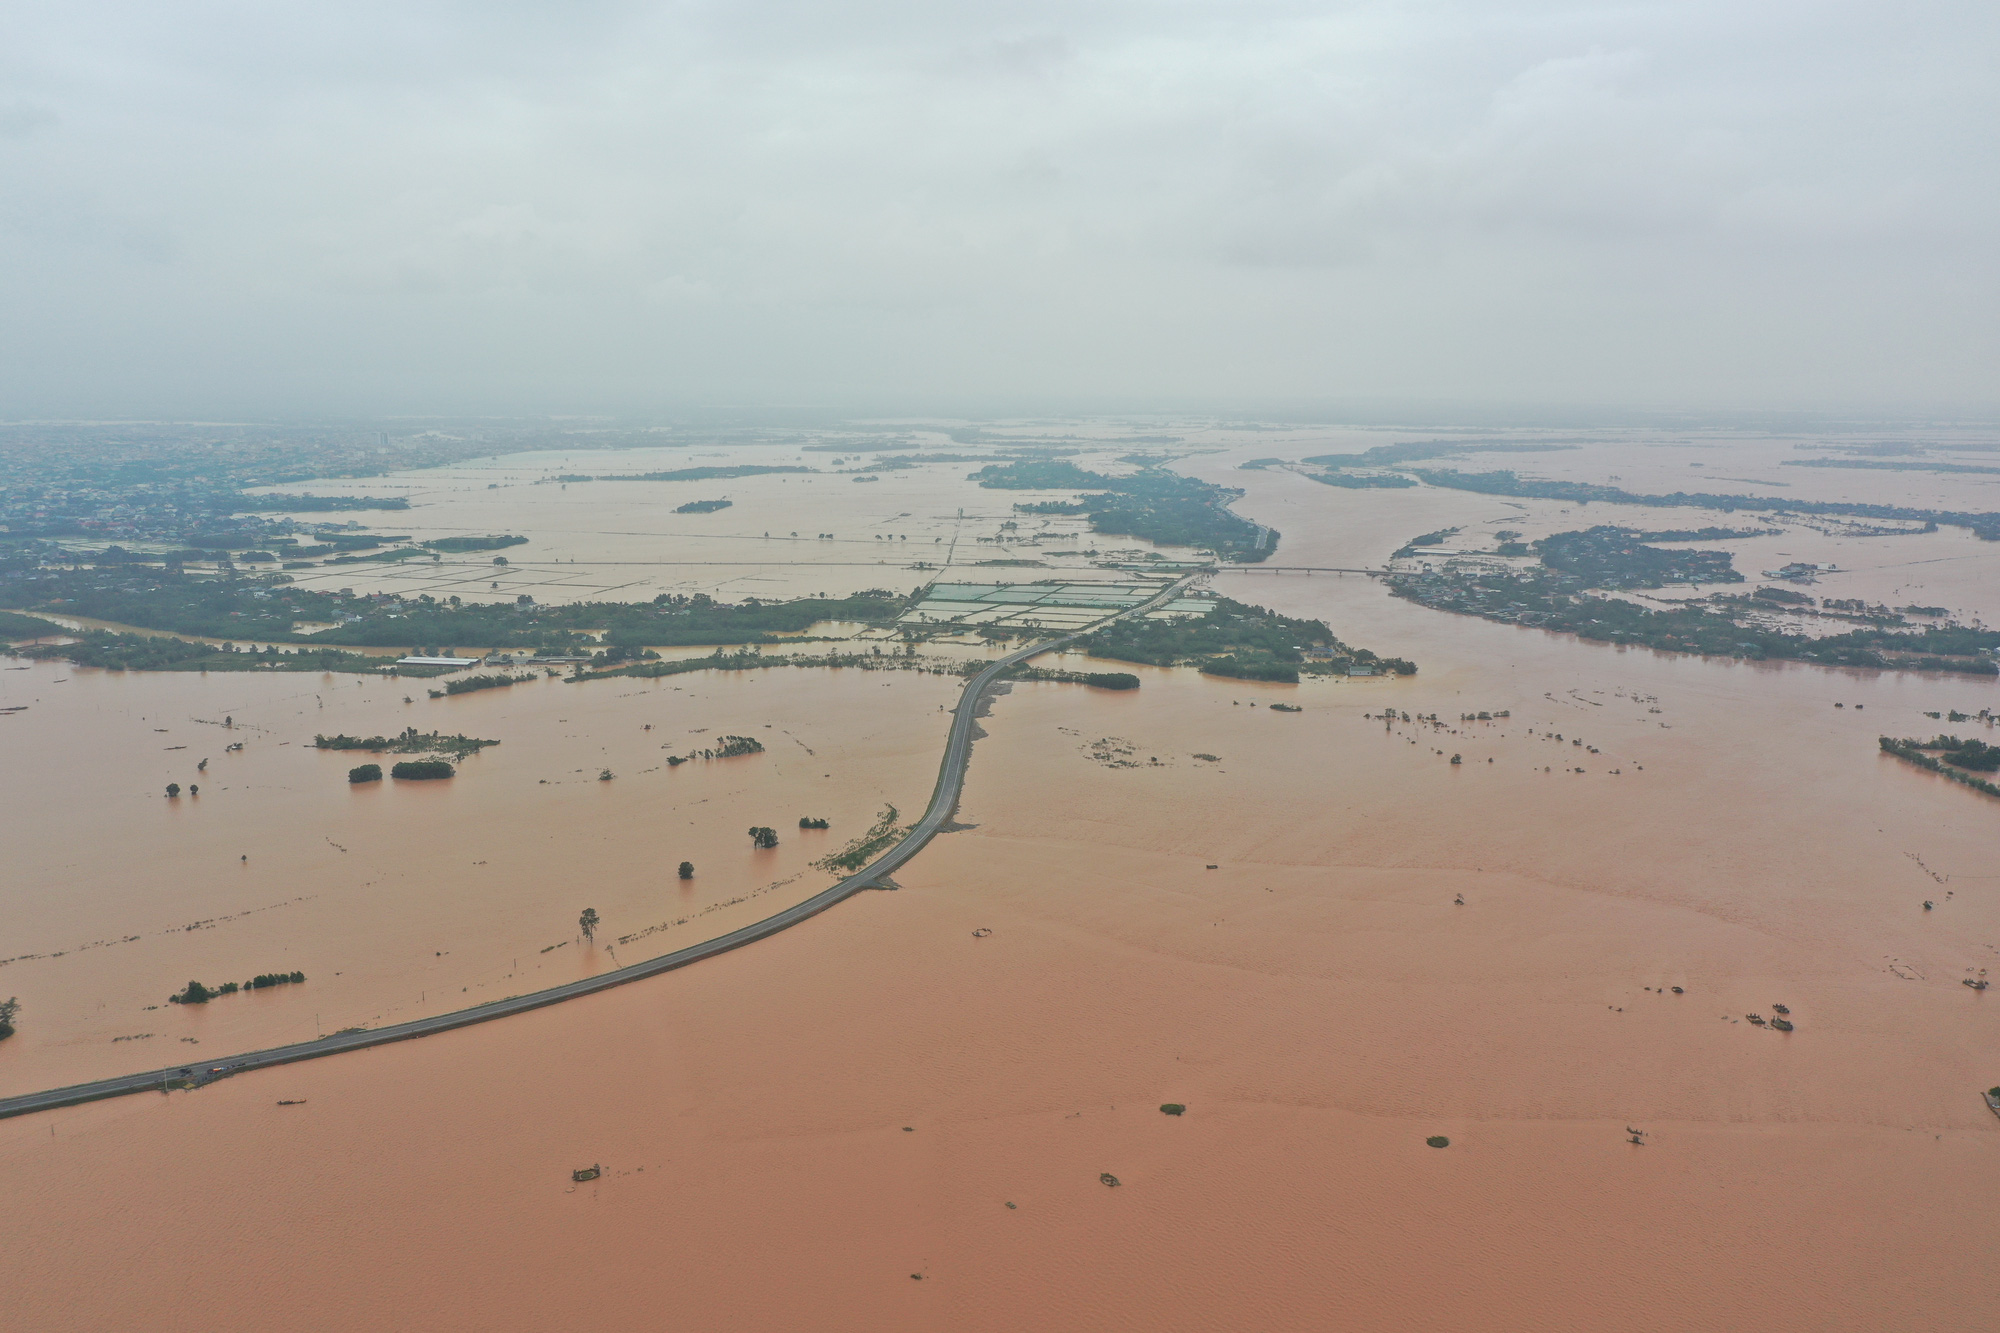 Flooding occurs in Thach Han River in Quang Tri Province, Vietnam, October 10, 2020. Photo: Truong Trung / Tuoi Tre